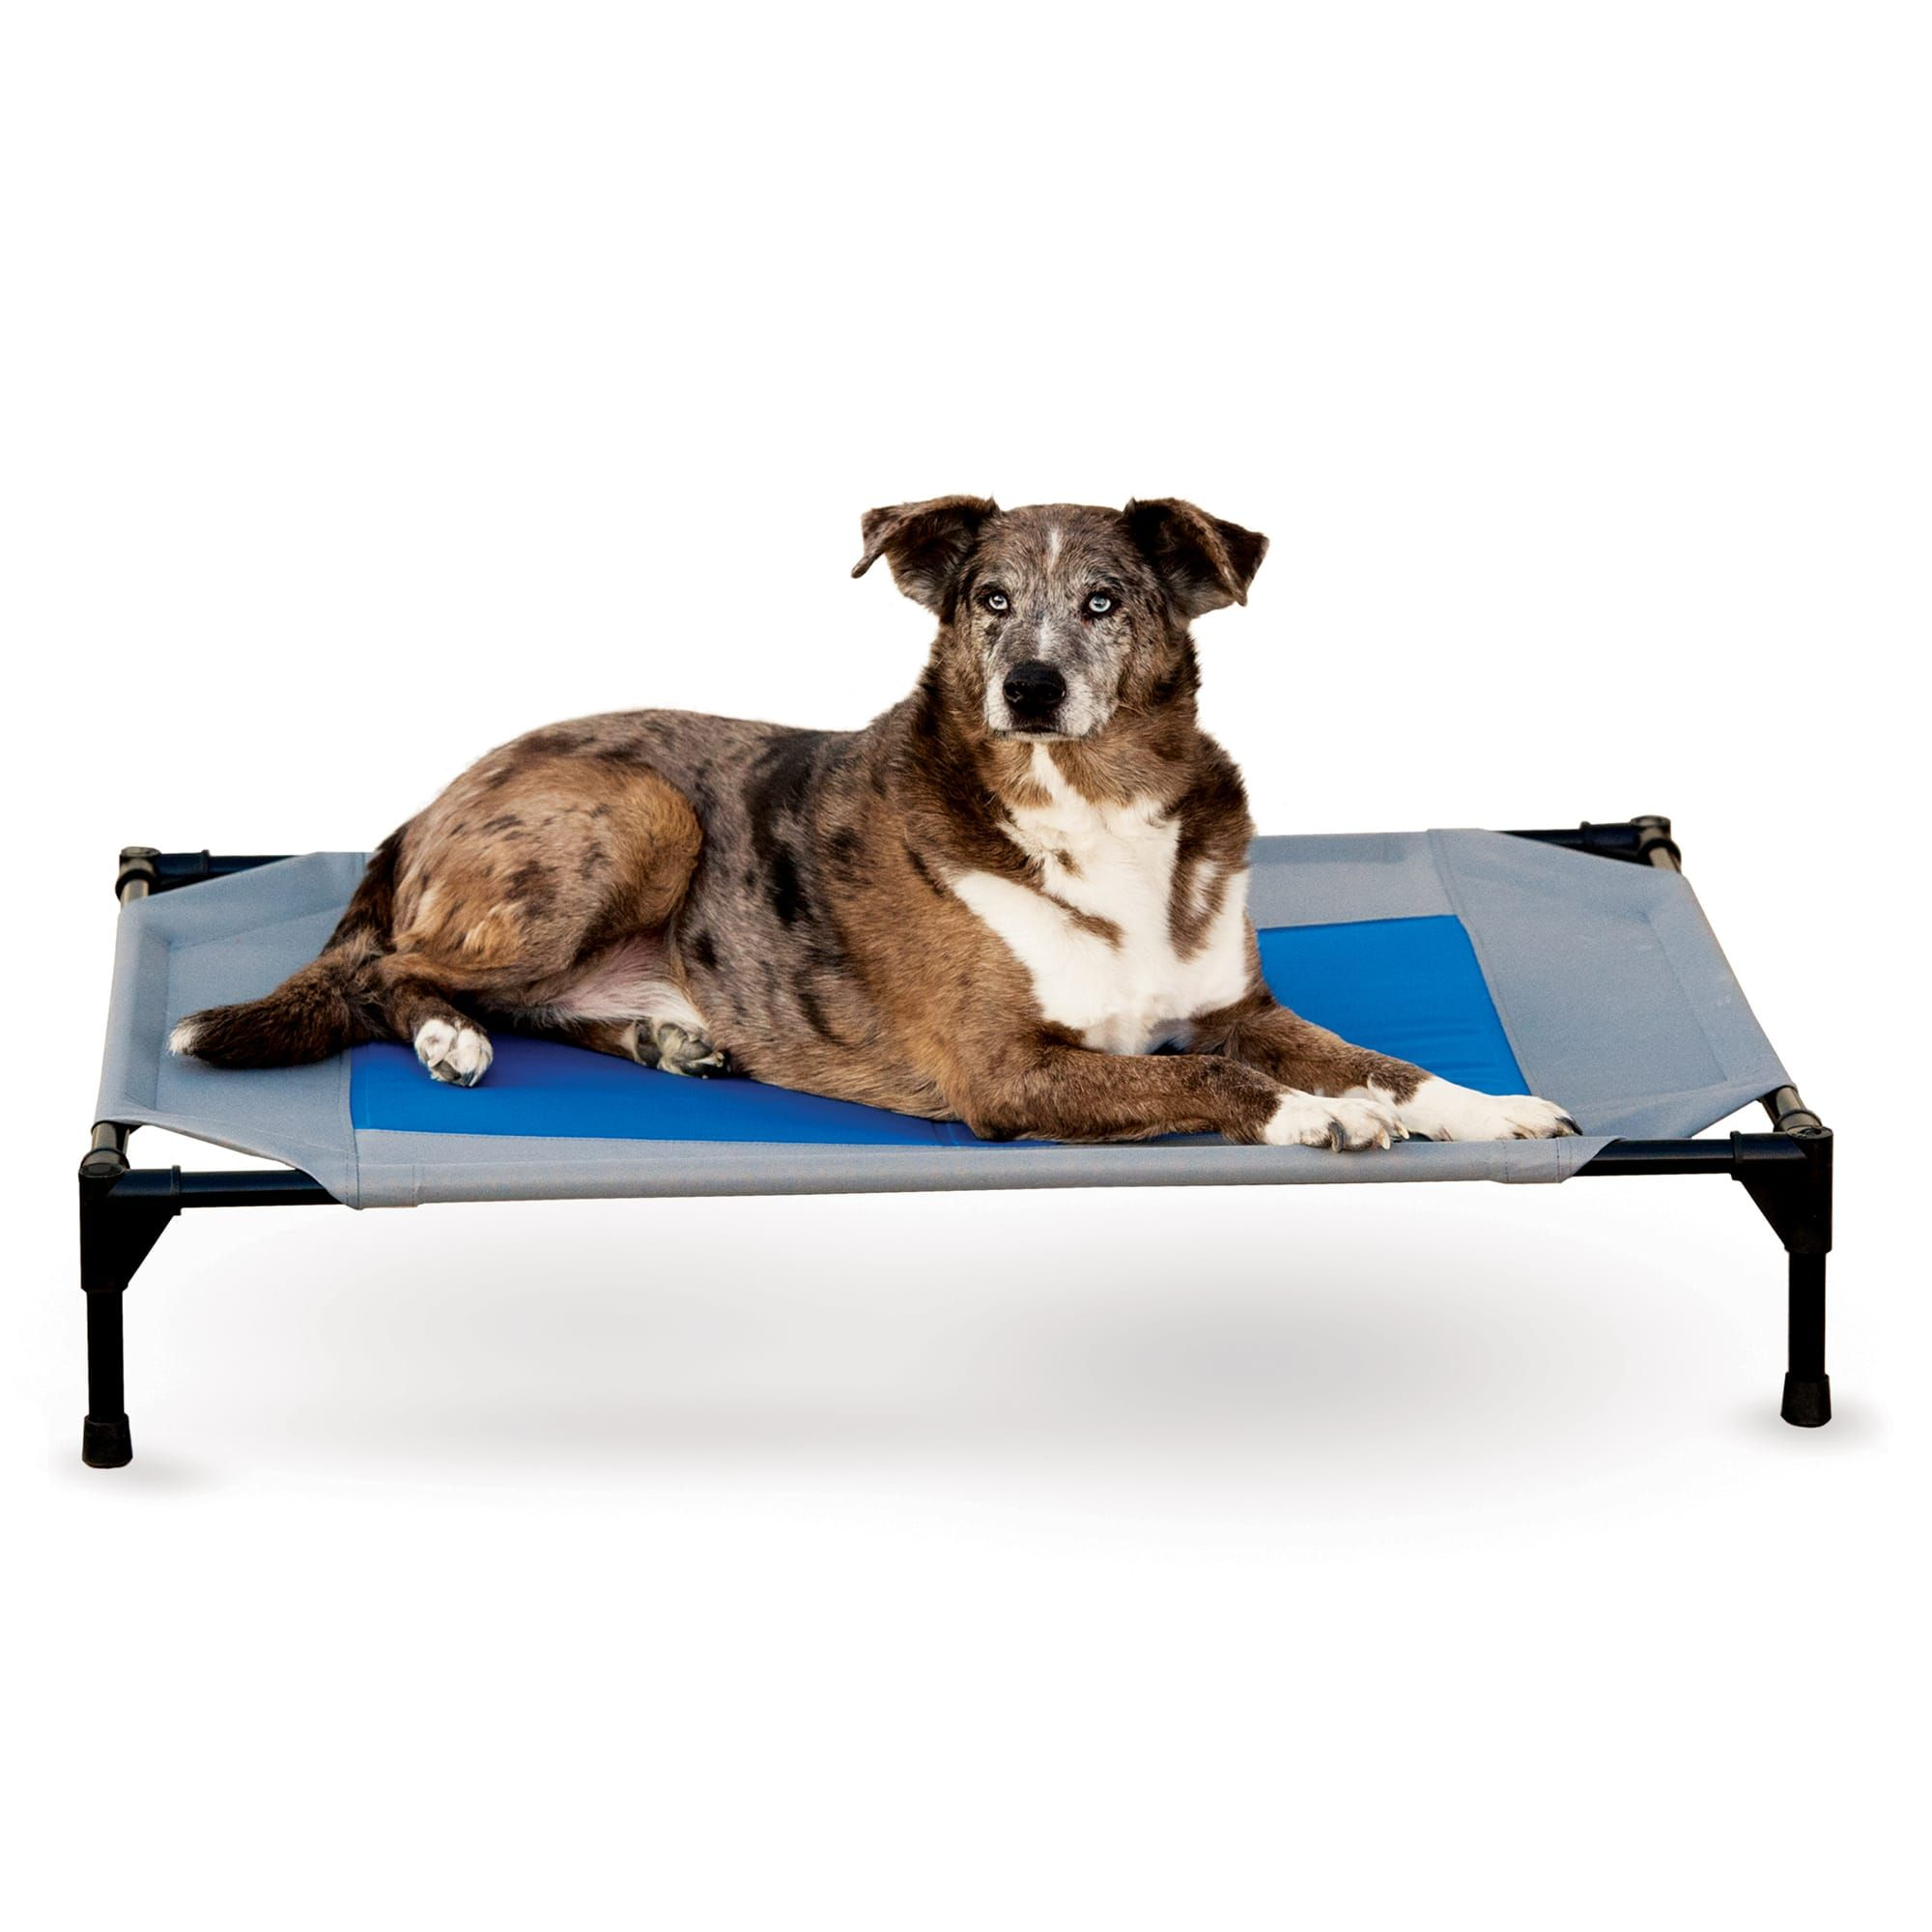 K H Cooling Pet Cot 42 L X 30 W Large Blue Cool Dog Beds